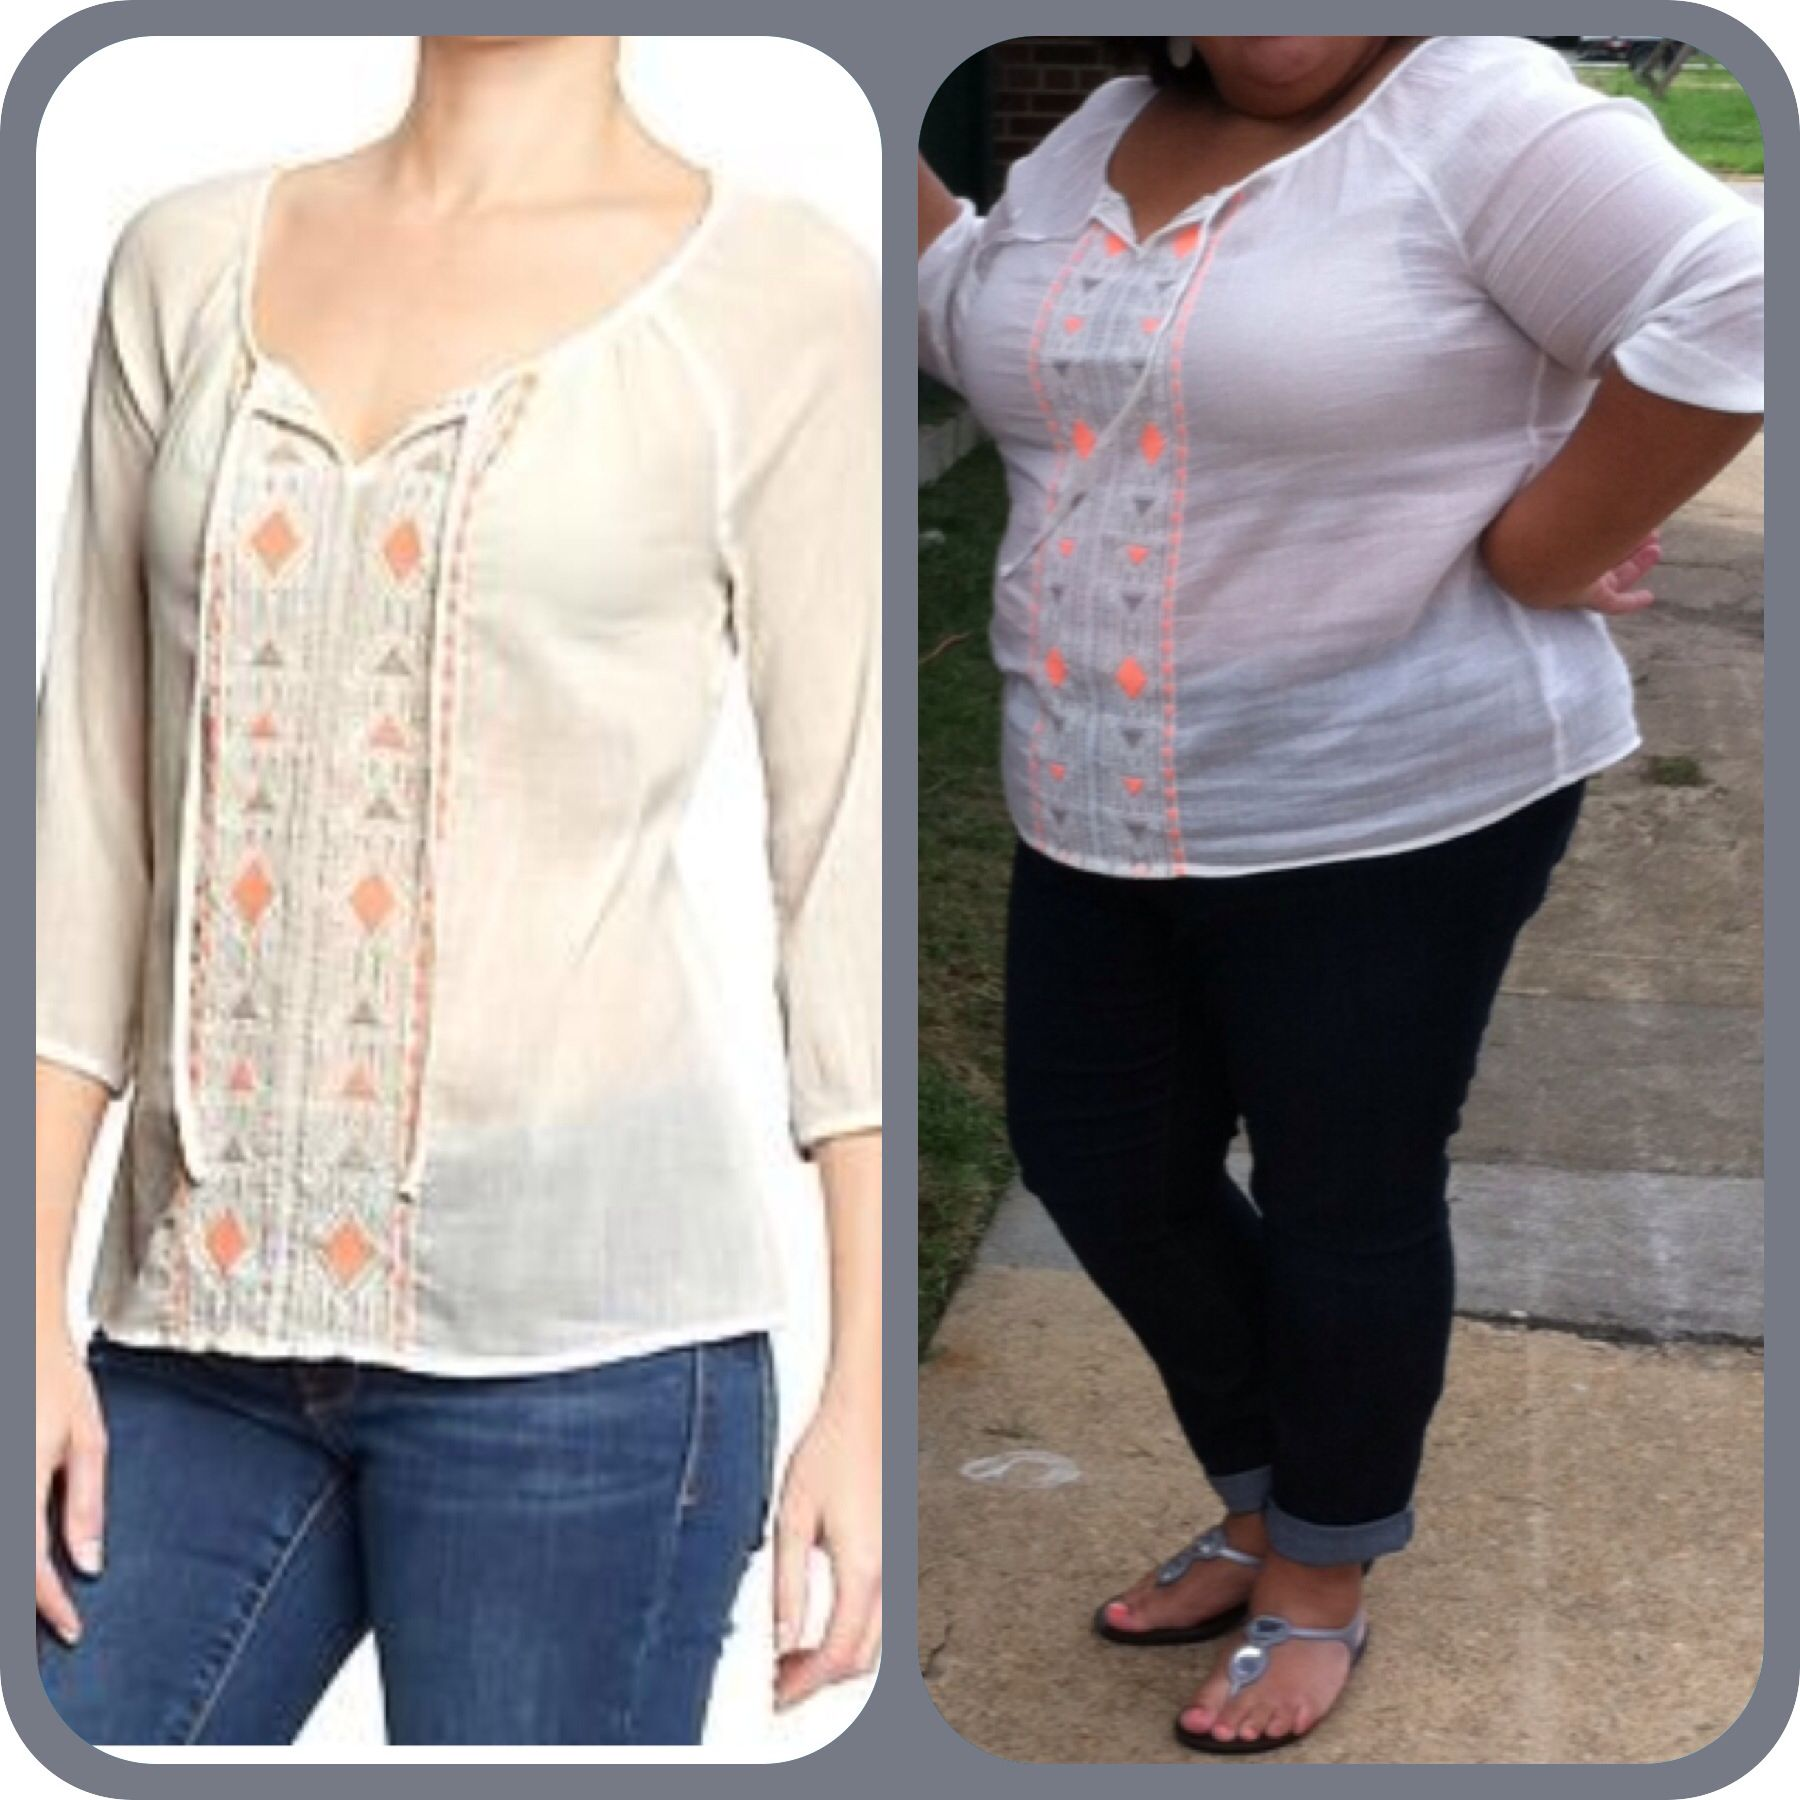 2014 outfit inspiration - old navy womens guaze/crepe tunic